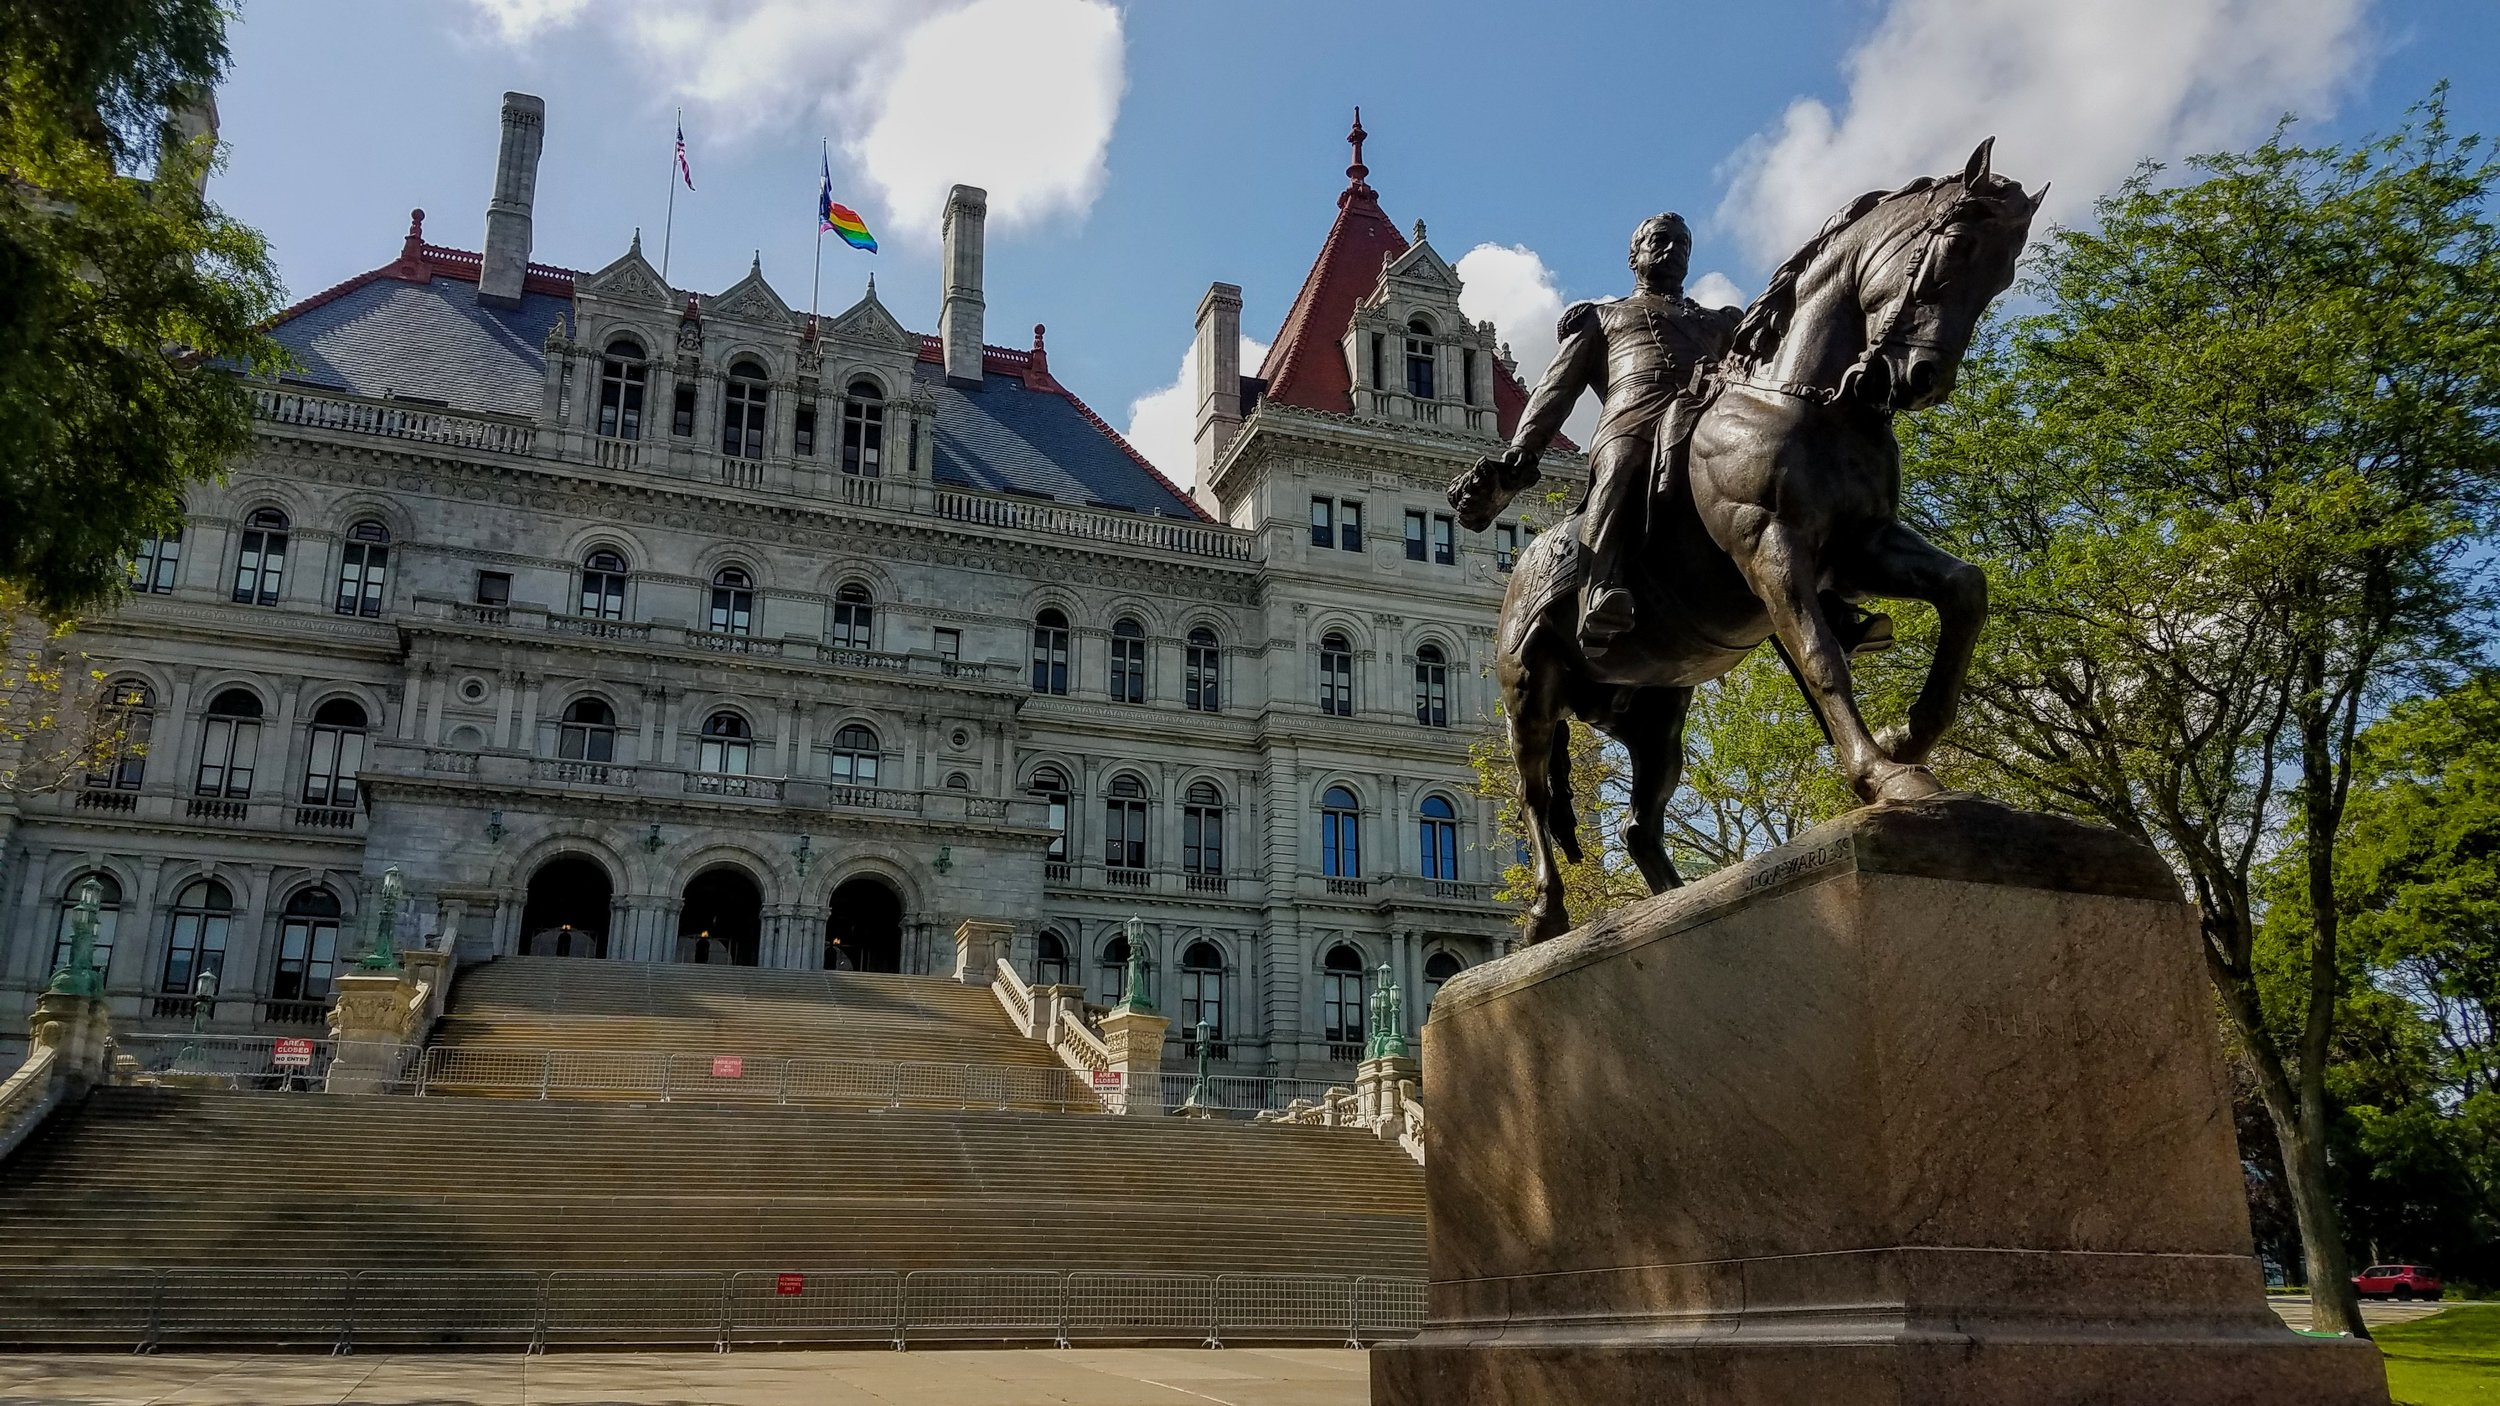 Albany is the state capital of New York. This is the State Capitol Building built in 1868